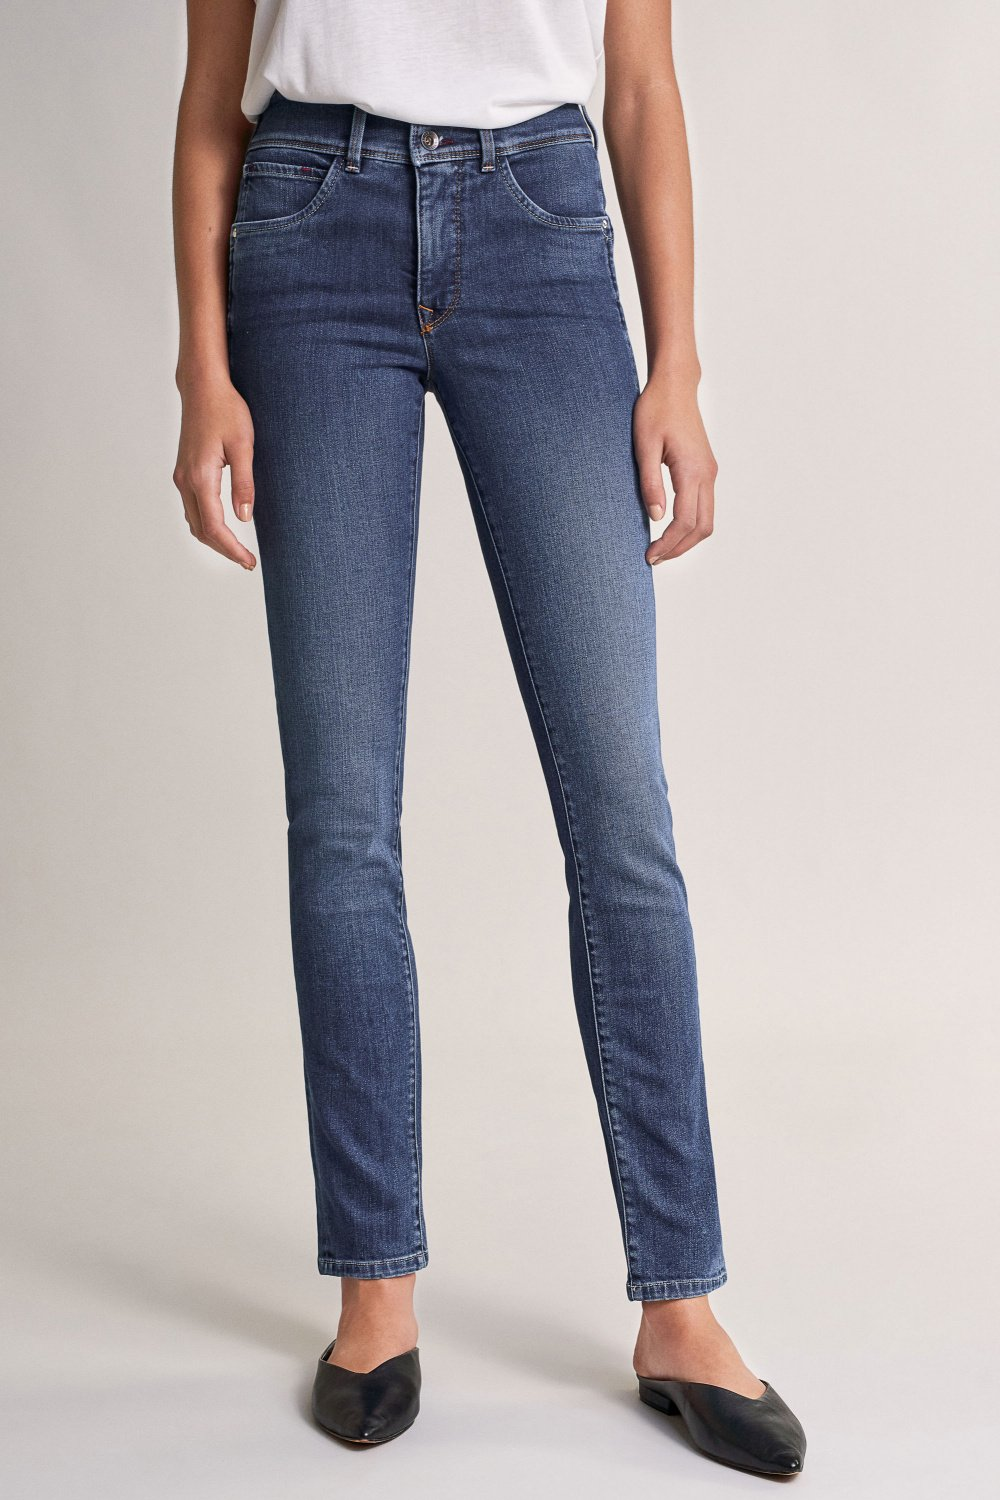 Push In Secret slim jeans with details - Salsa